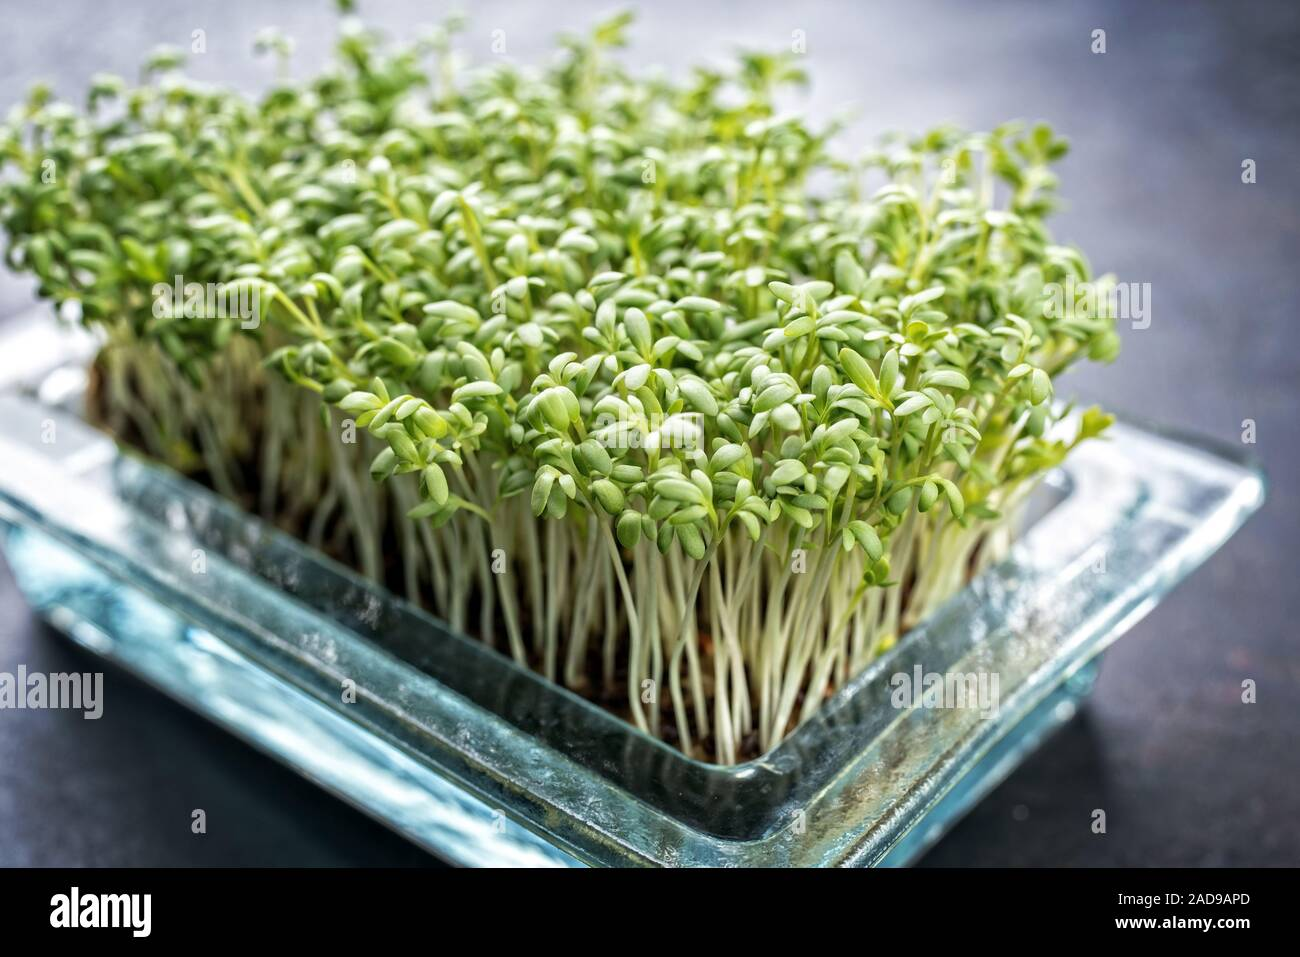 Fresh garden cress germ bud as closeup on a black board with copy space Stock Photo